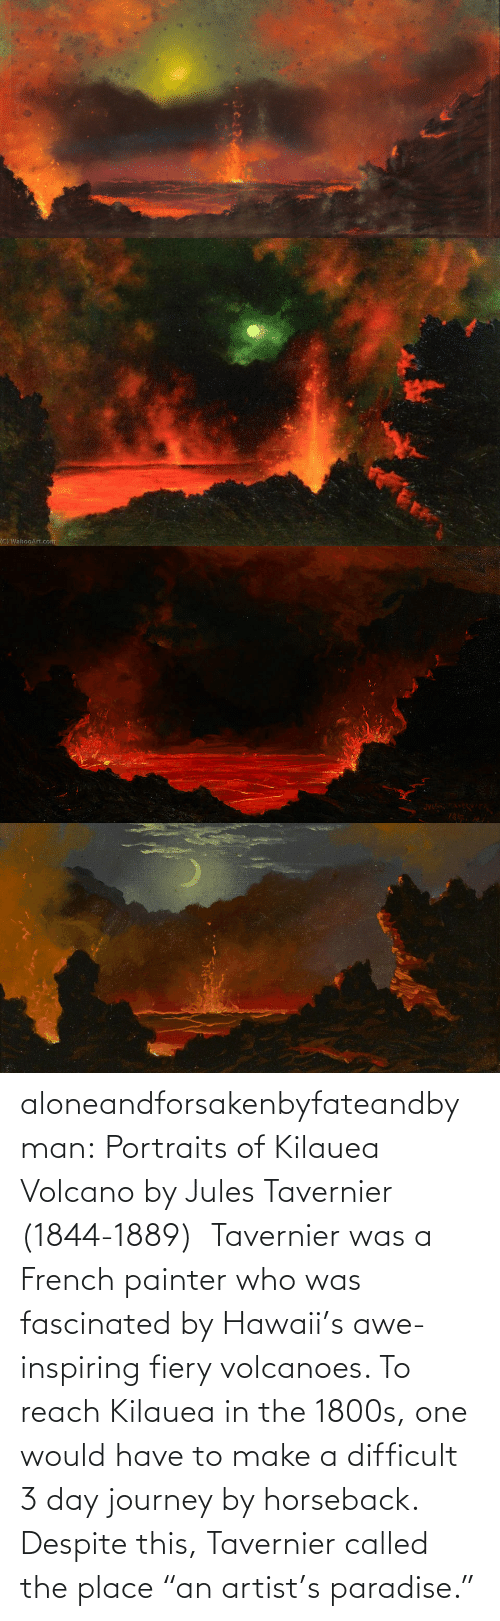 "Volcano: aloneandforsakenbyfateandbyman:  Portraits of Kilauea Volcano by Jules Tavernier (1844-1889)    Tavernier was a French painter who was fascinated by Hawaii's awe-inspiring fiery volcanoes. To reach Kilauea in the 1800s, one would have to make a difficult 3 day journey by horseback. Despite this, Tavernier called the place ""an artist's paradise."""